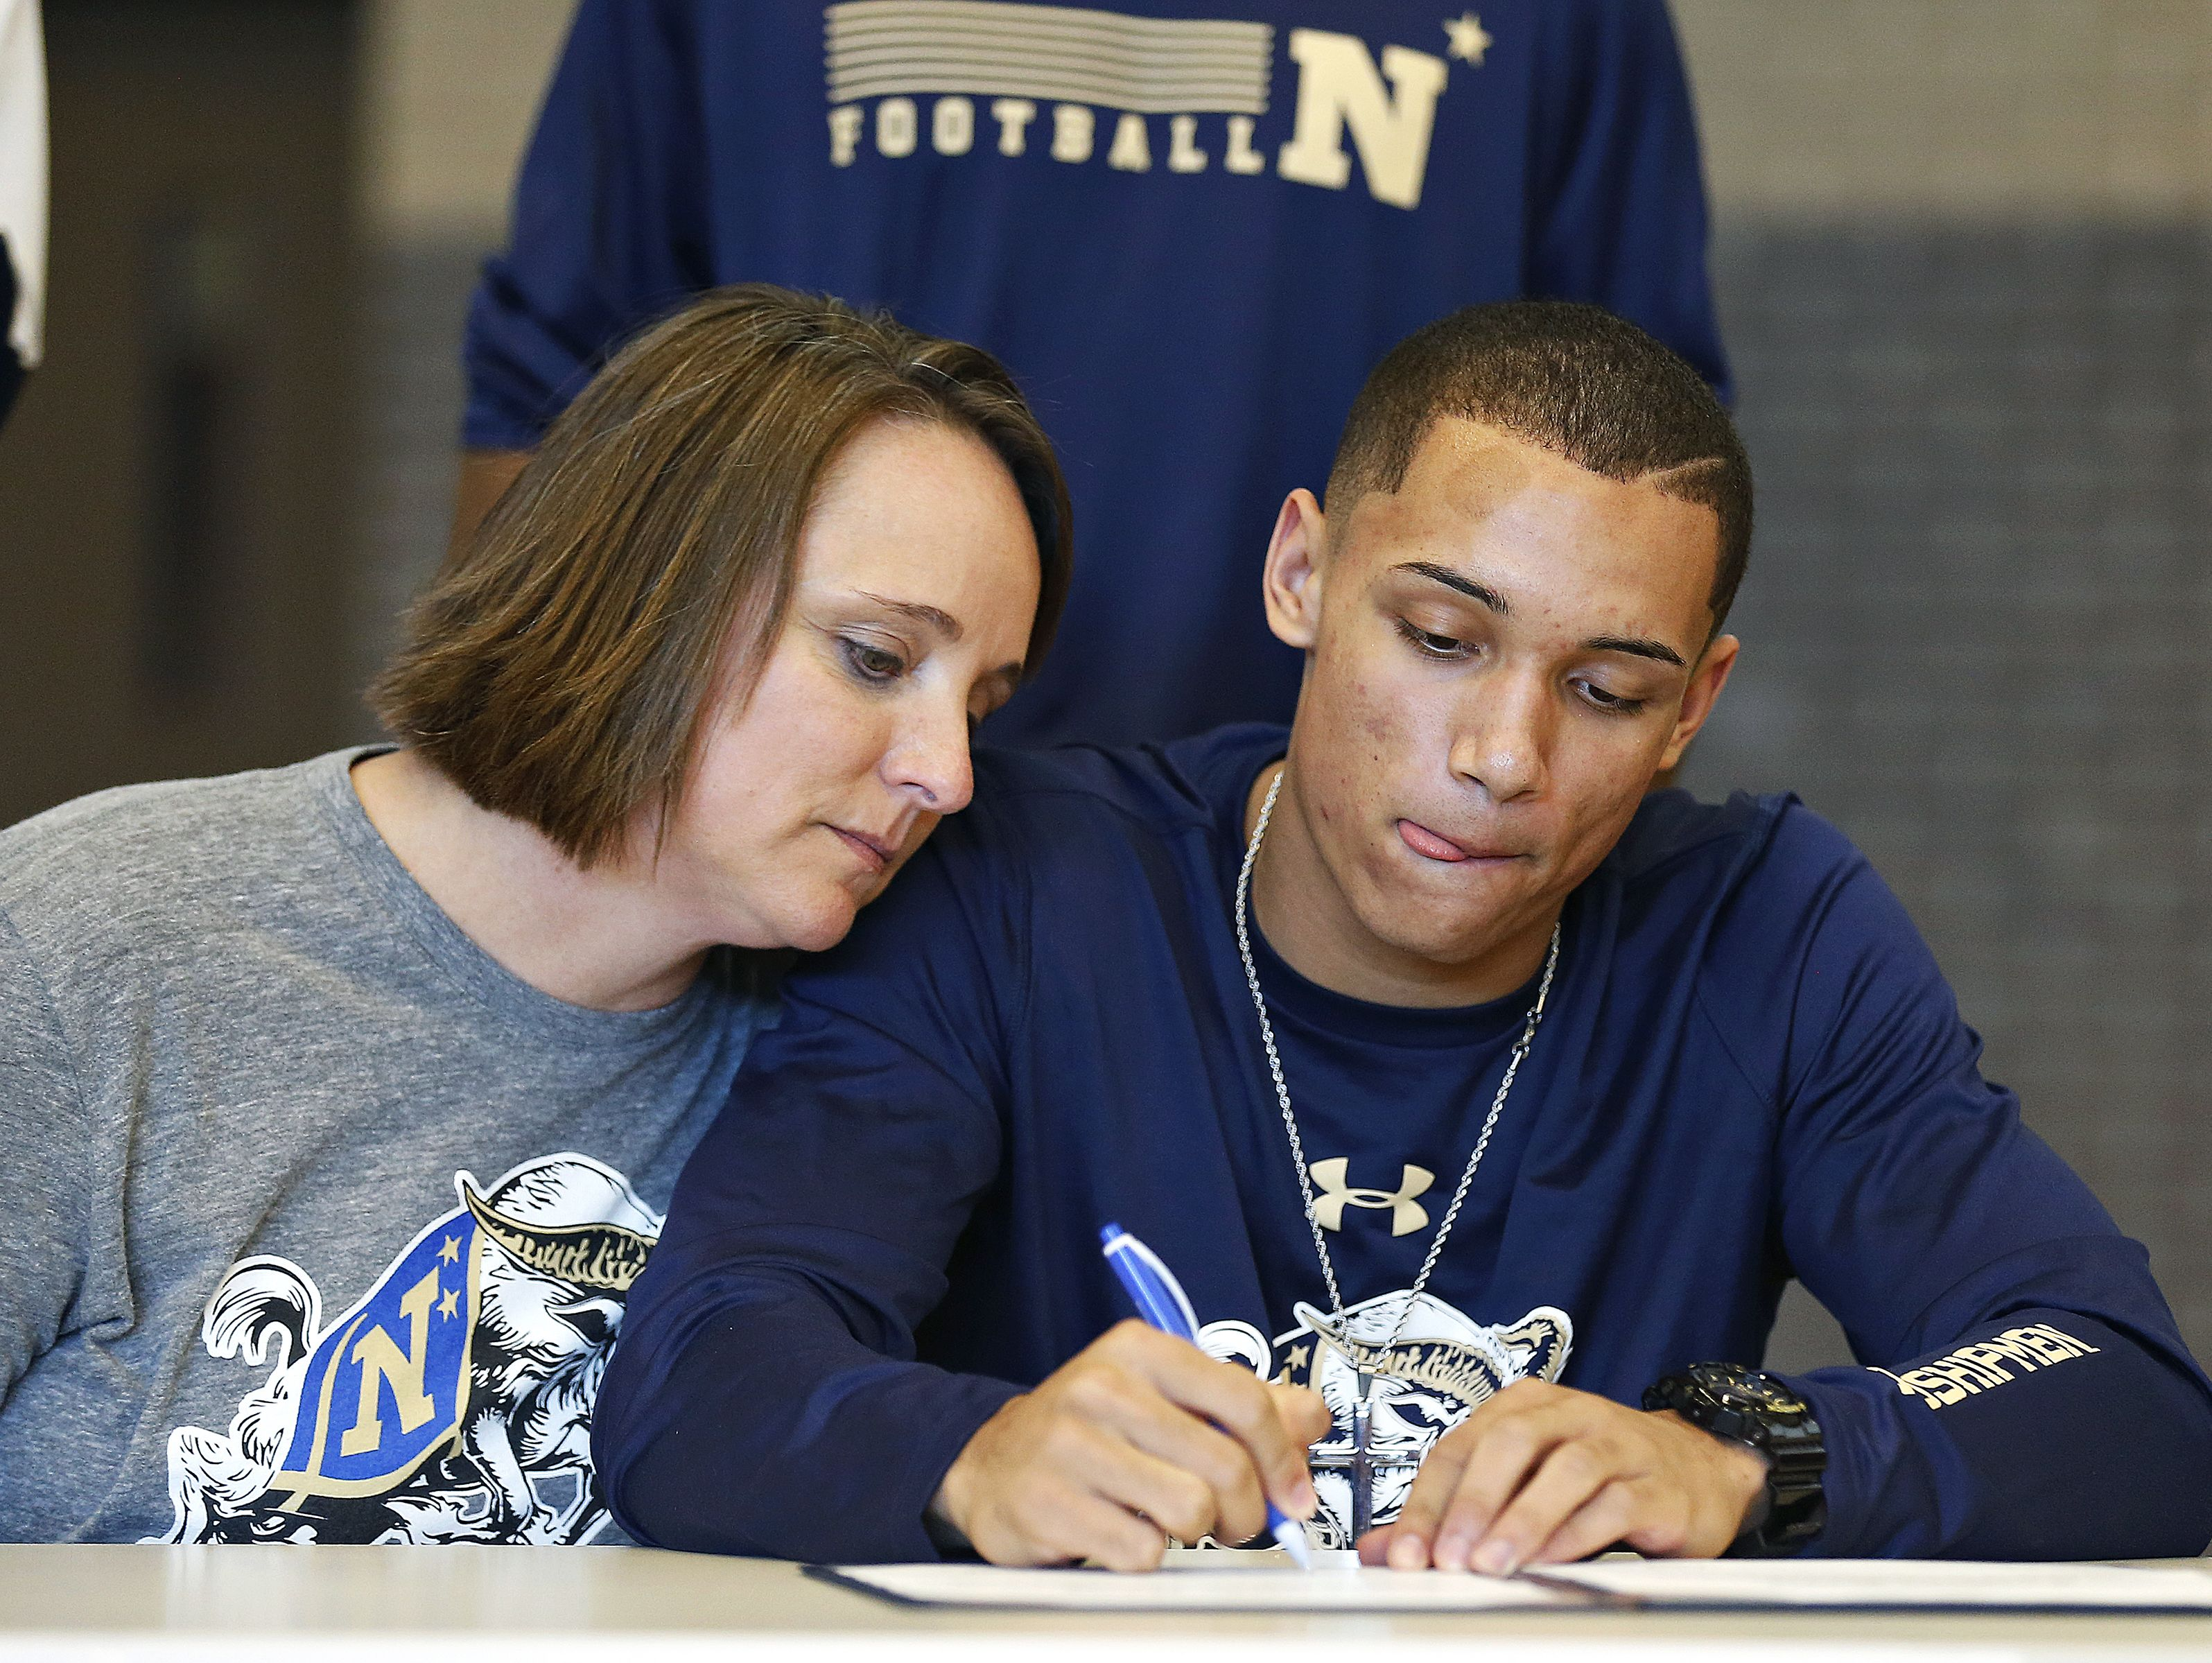 Cameron Davis signs a national letter of intent to the Naval Academy during a National Signing Day event held for Chiefs athletes at Kickapoo High School in Springfield, Mo. on Nov. 9, 2016.